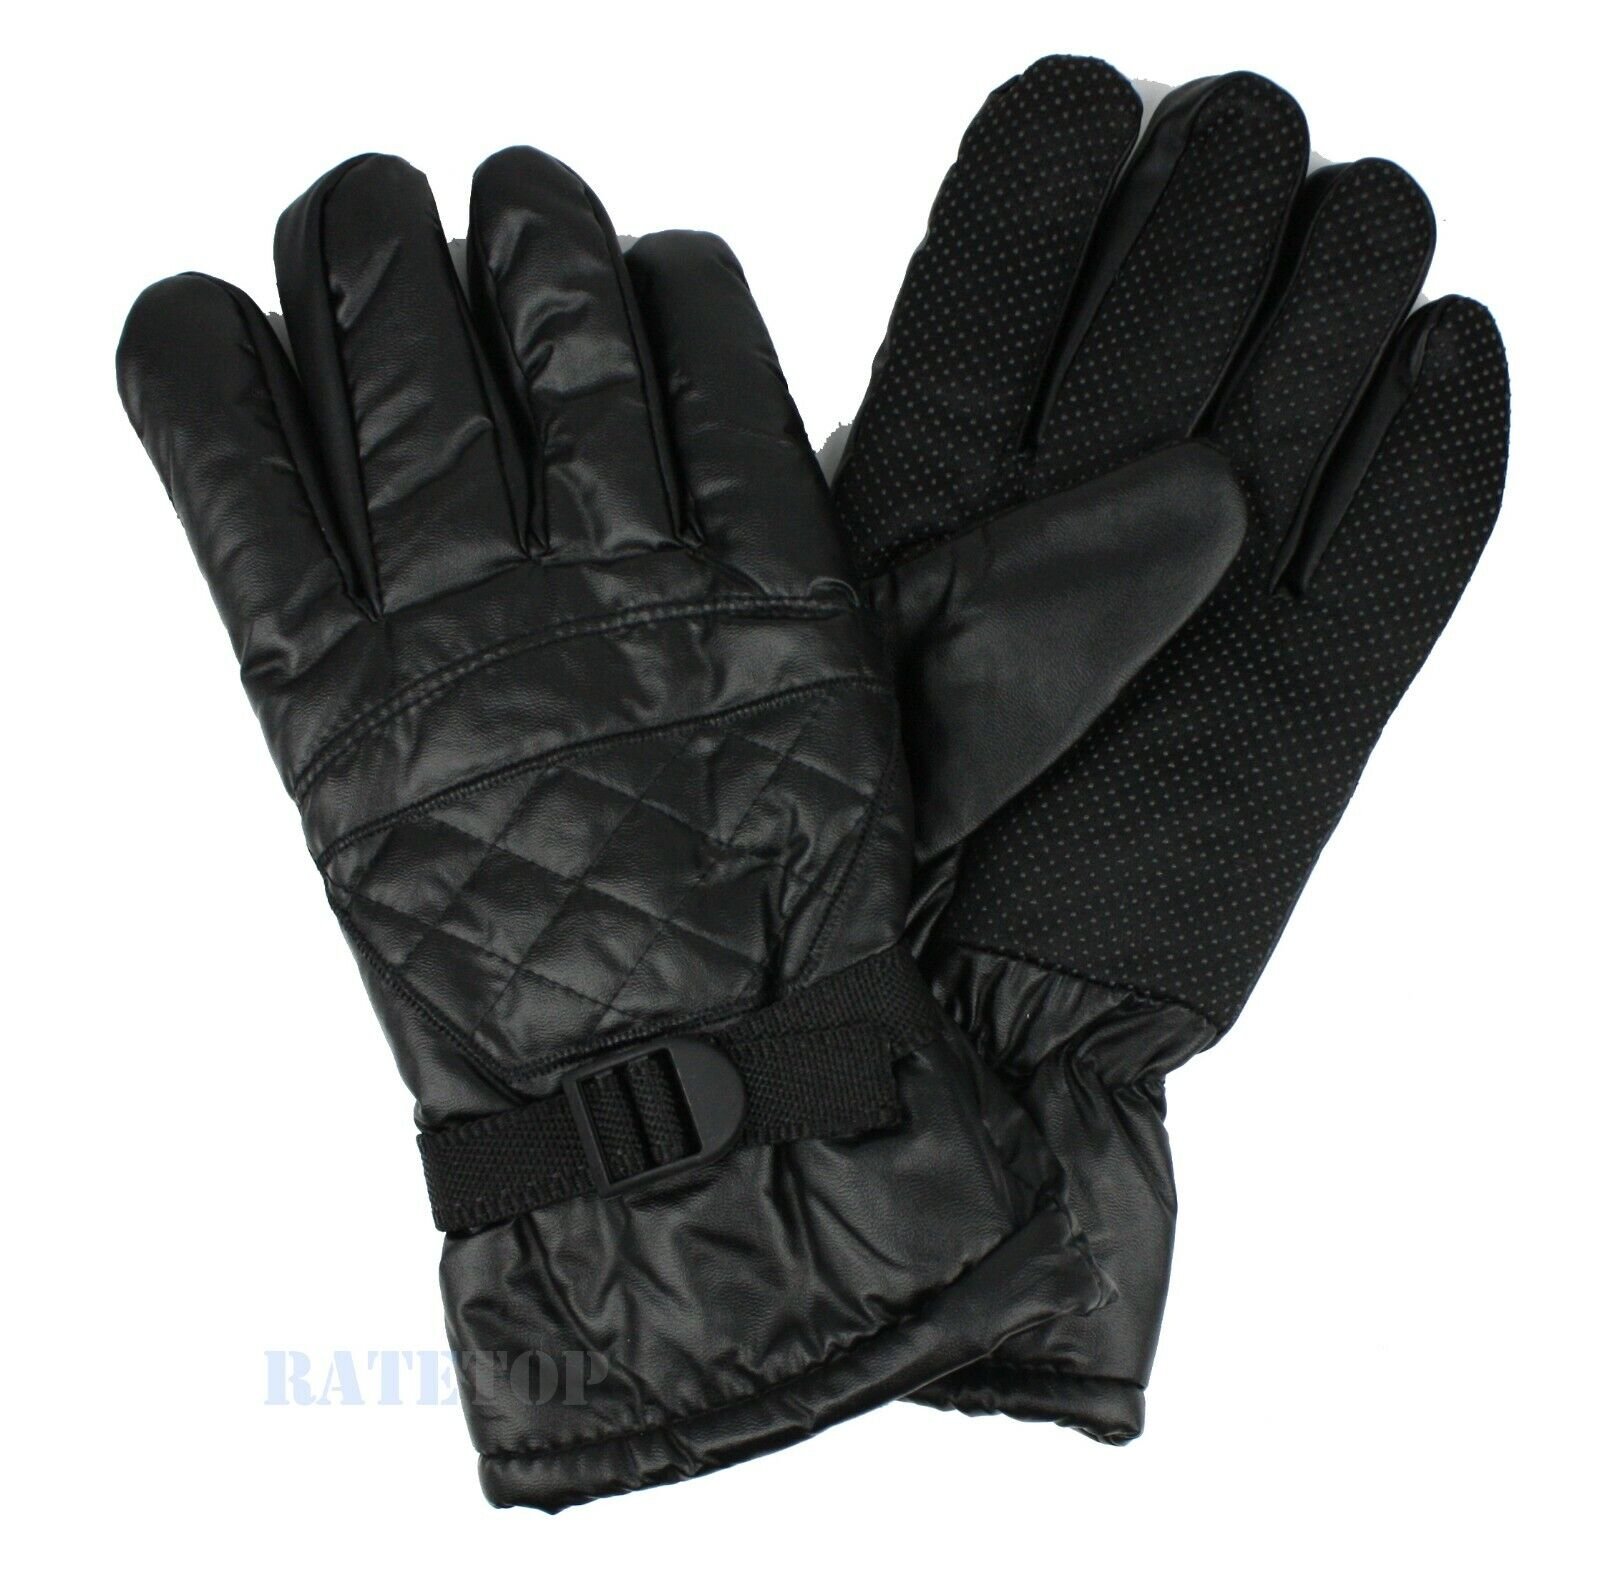 Mens Winter Thermal Synthetic Leather Fleece Lined Waterproof Gloves Mitten Ski Clothing, Shoes & Accessories